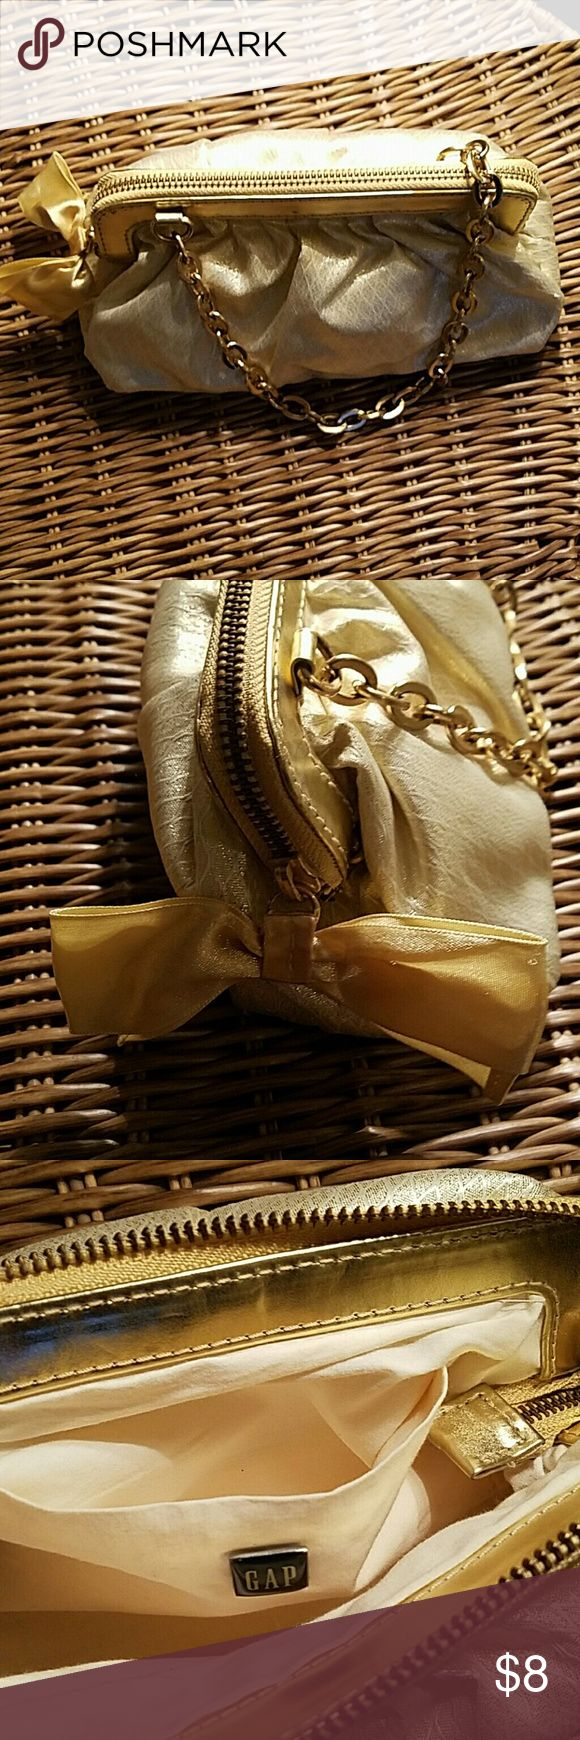 GAP Shimmering Gold Fabric Bag [NWOT] Gold hardware and of fabric material. Gold satin bow as zipper slider. Light weight.  Brand new / Never used. Excellent condition!  Perfect bag for a night out! GAP Bags Mini Bags